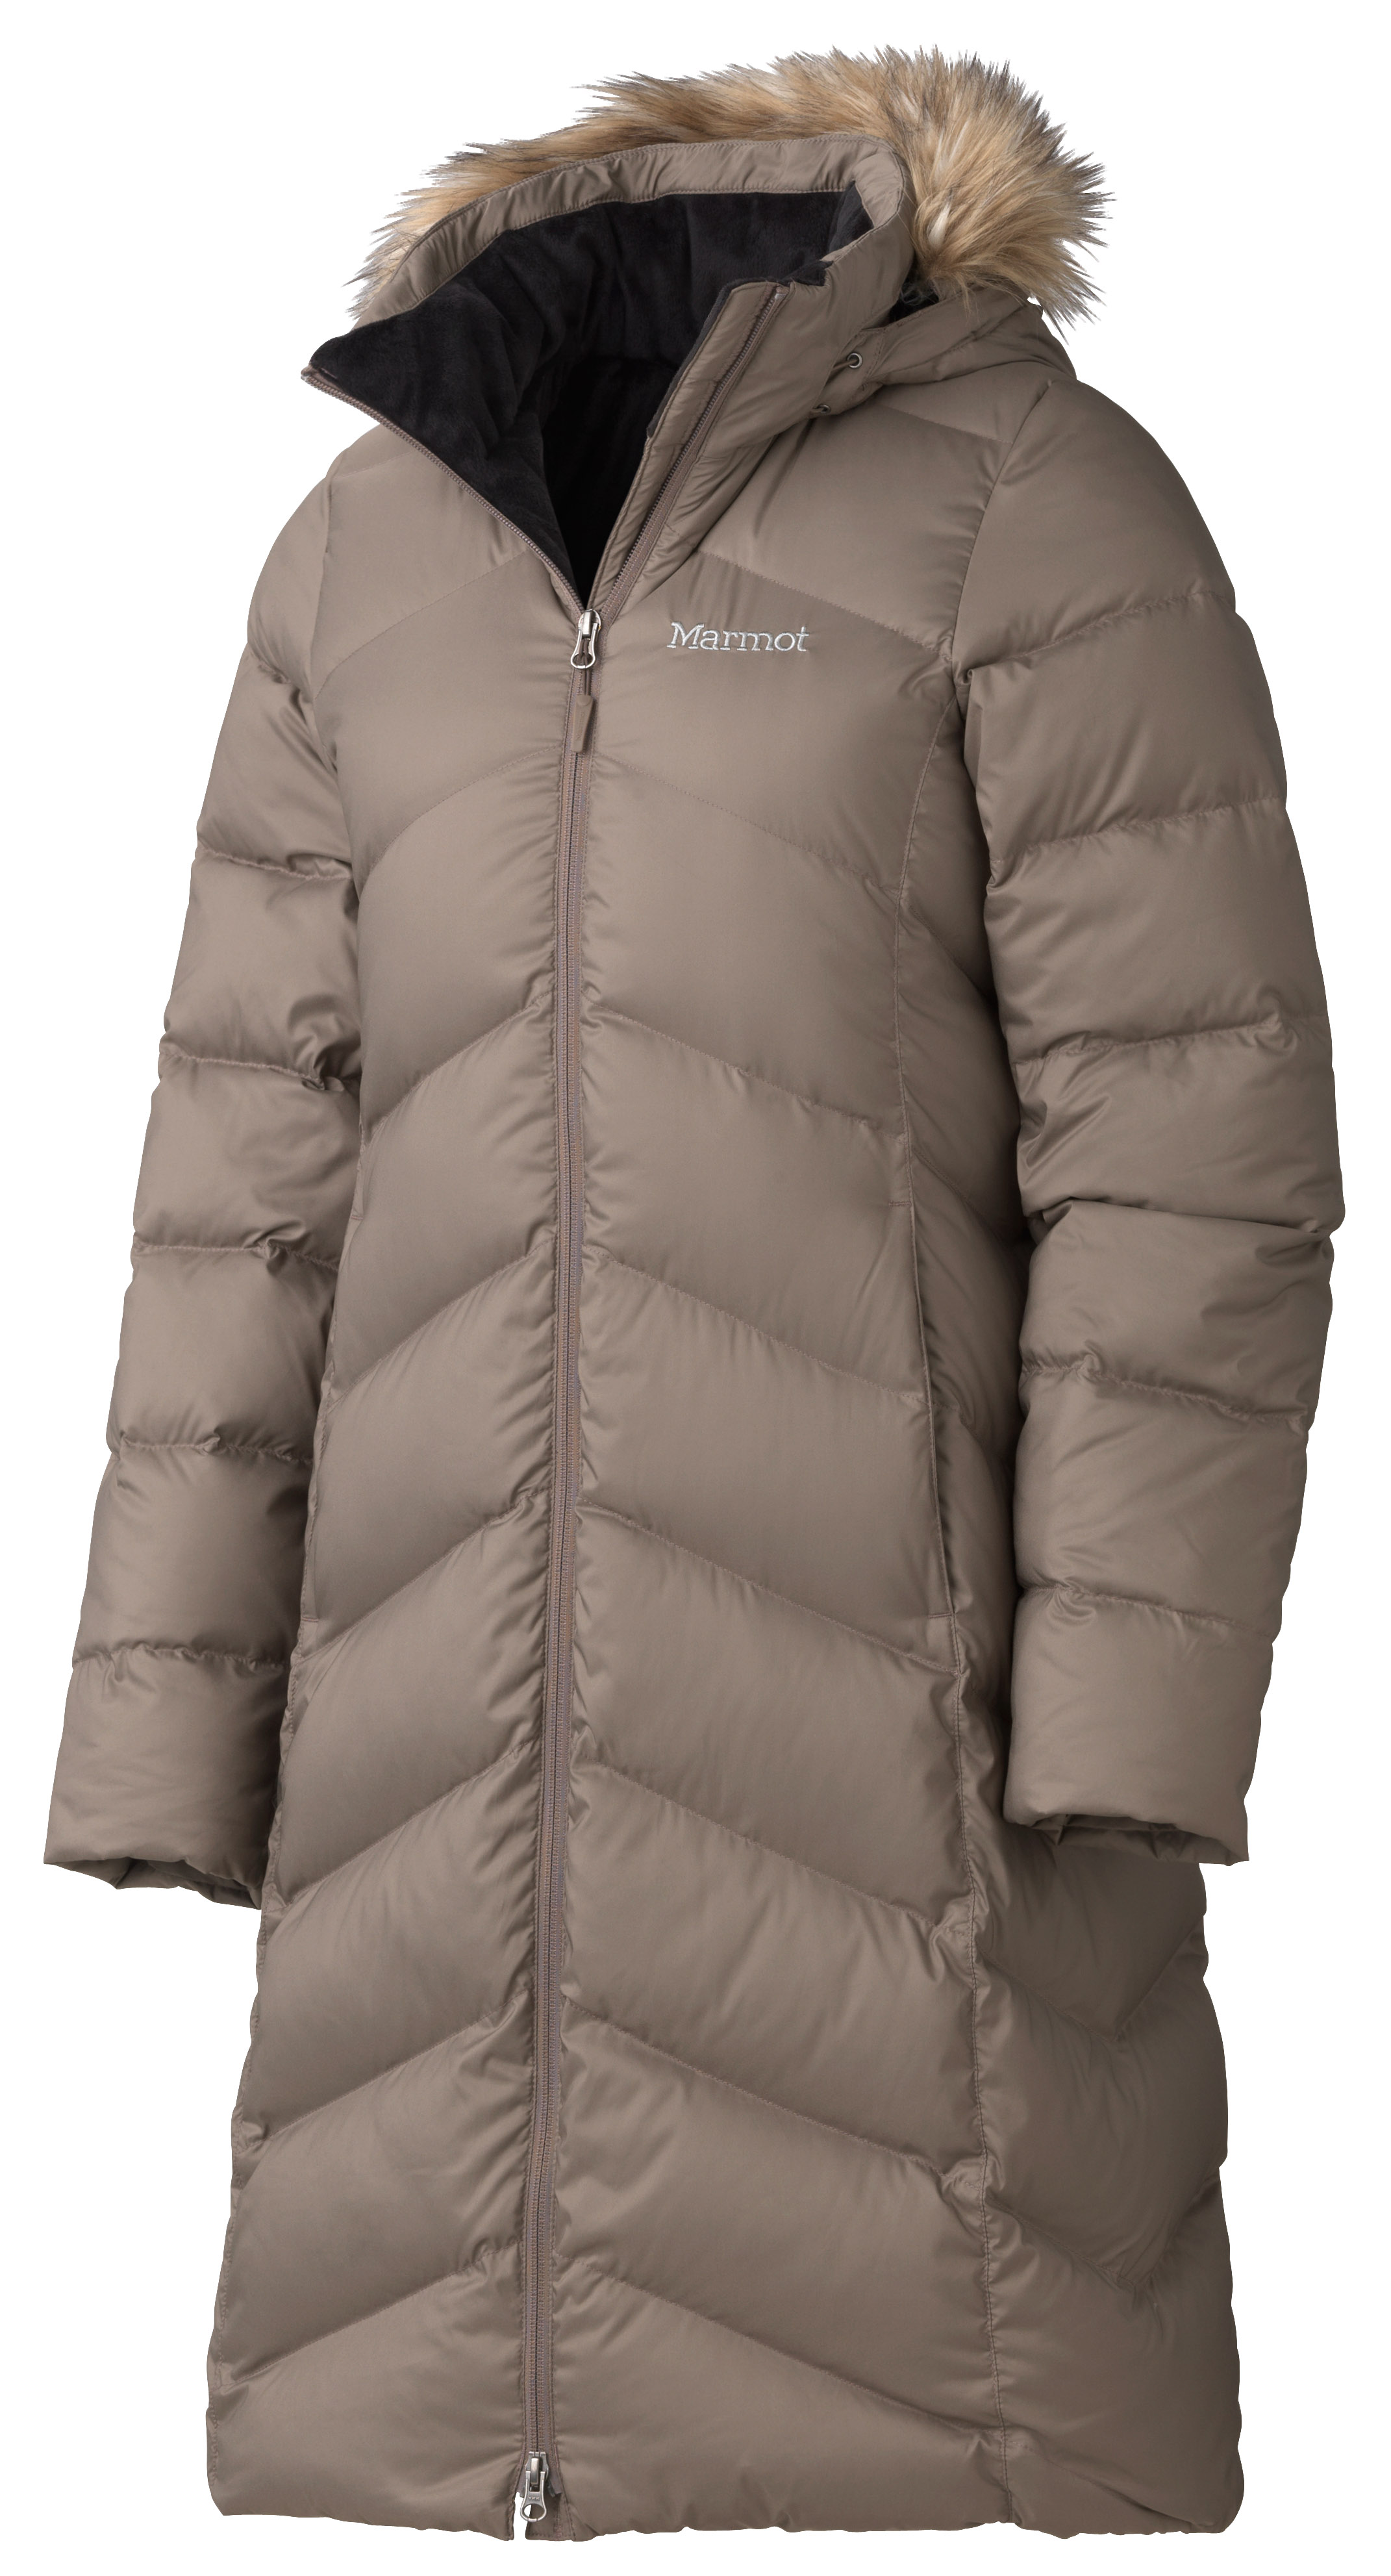 2230ff81 Marmot Montreaux Coat - Womens 78090-6765-S, 50% Off & Free 2 Day Shipping  — CampSaver